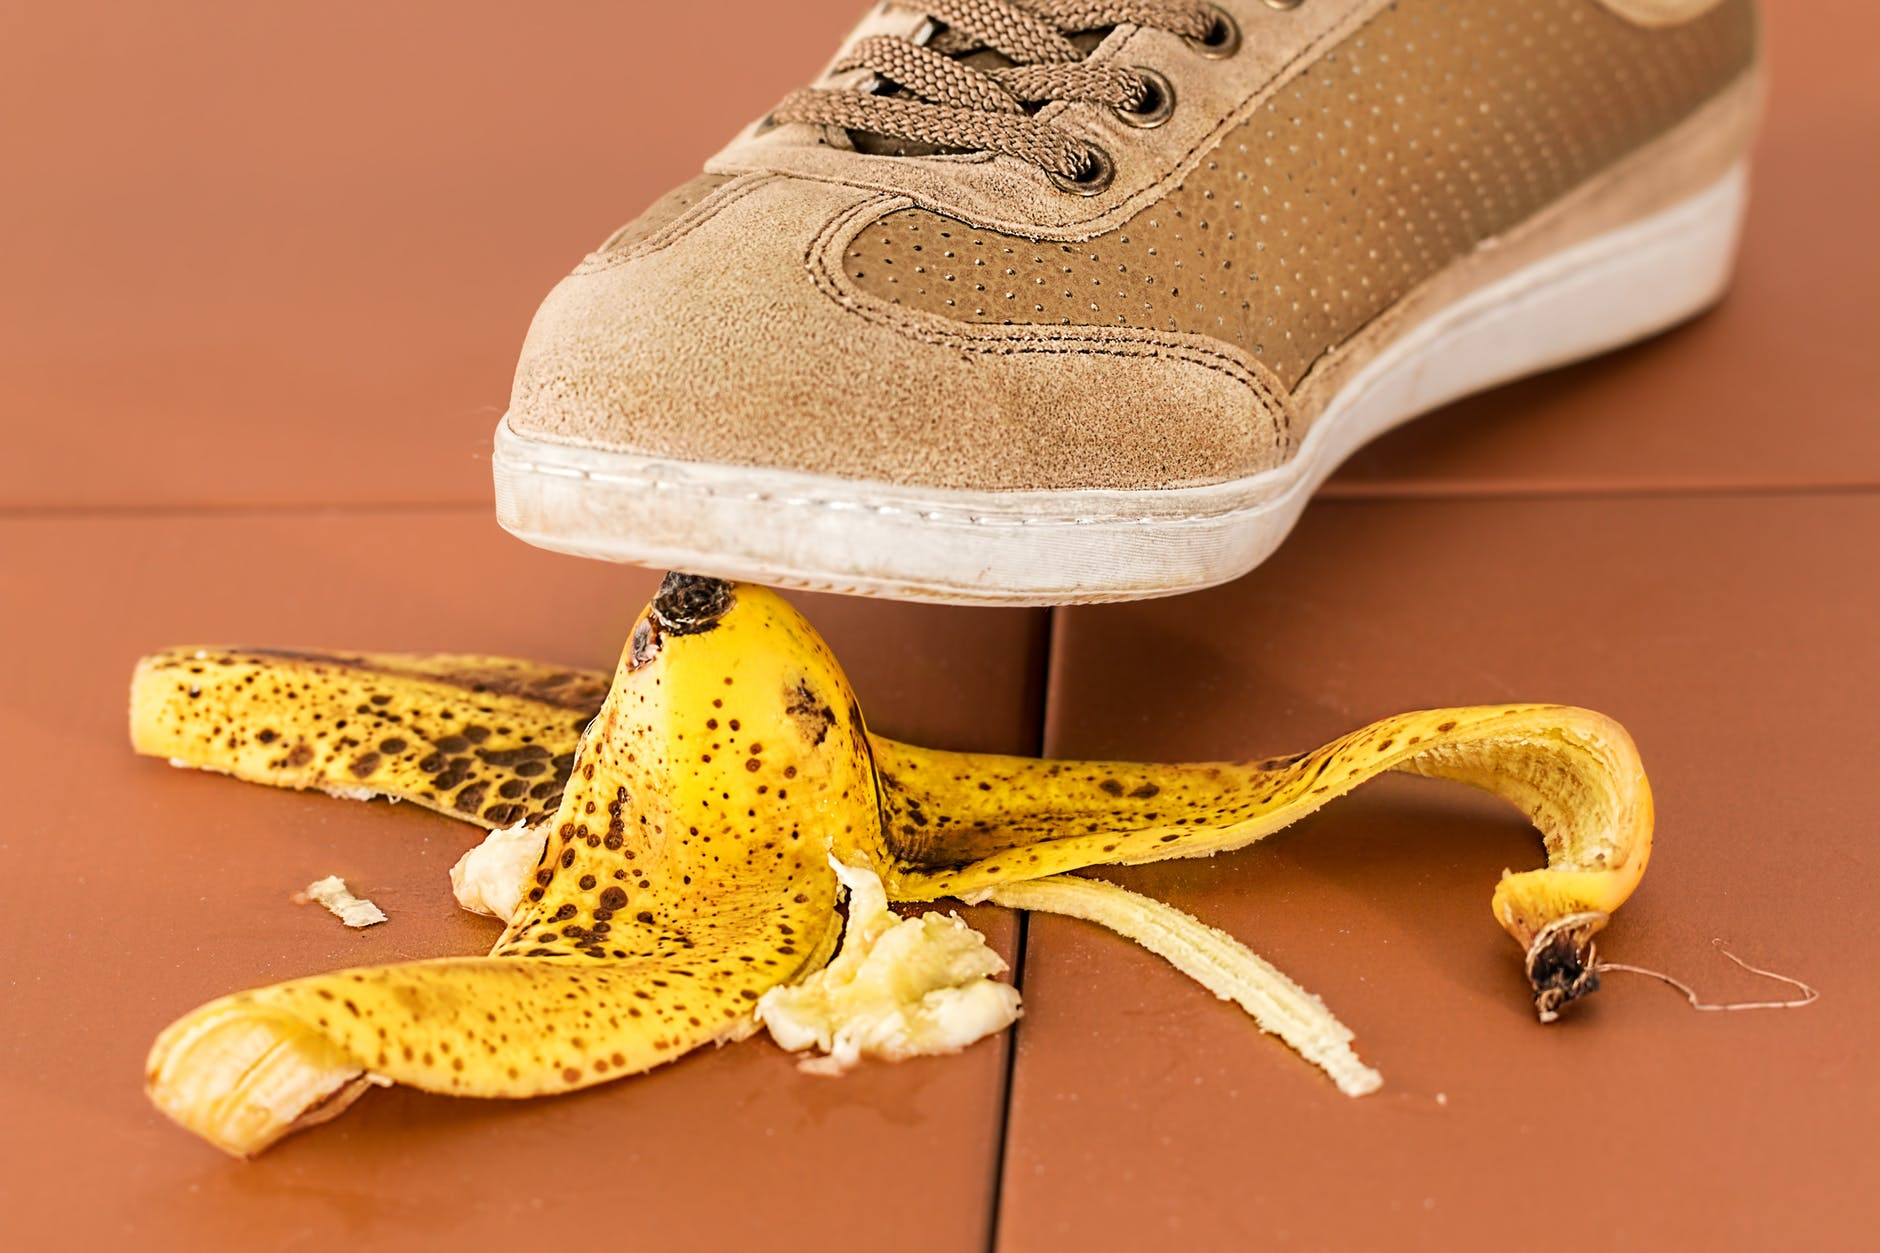 An individual about to step on a banana peel. The kitchen is an area of concern when determining if your home is safe for the seniors in your life.